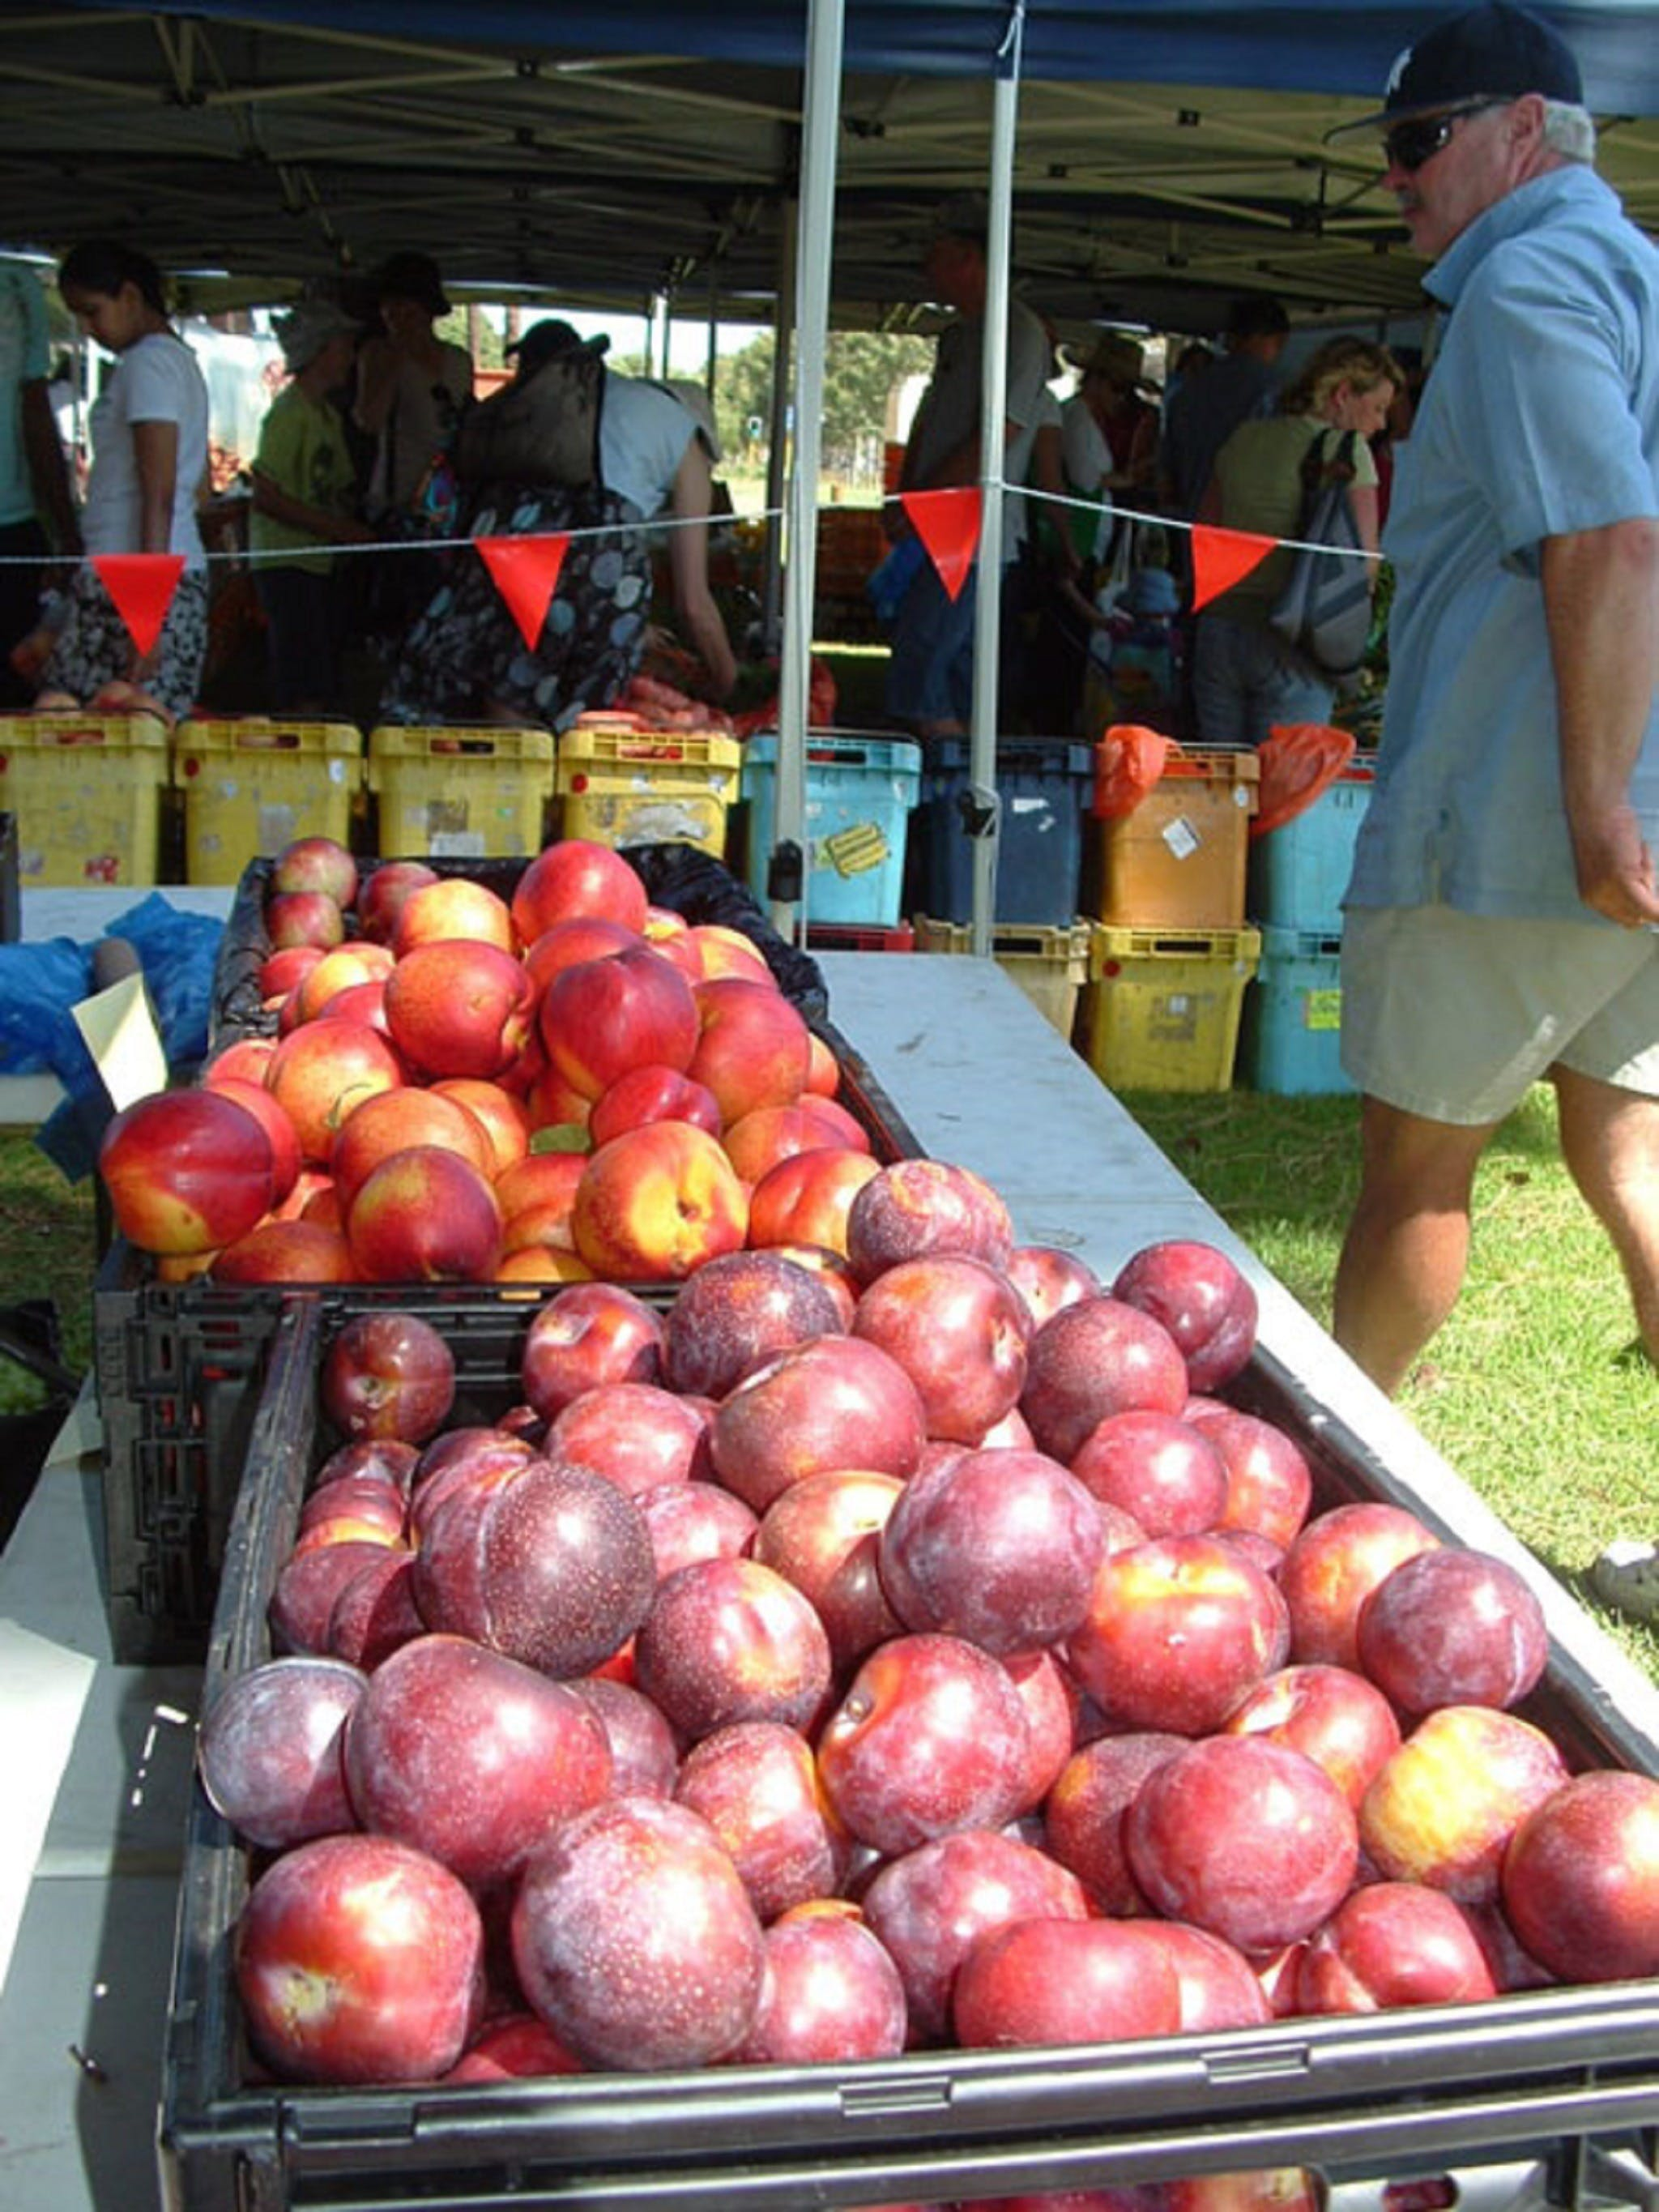 The Farmers Market on Manning - Accommodation Tasmania